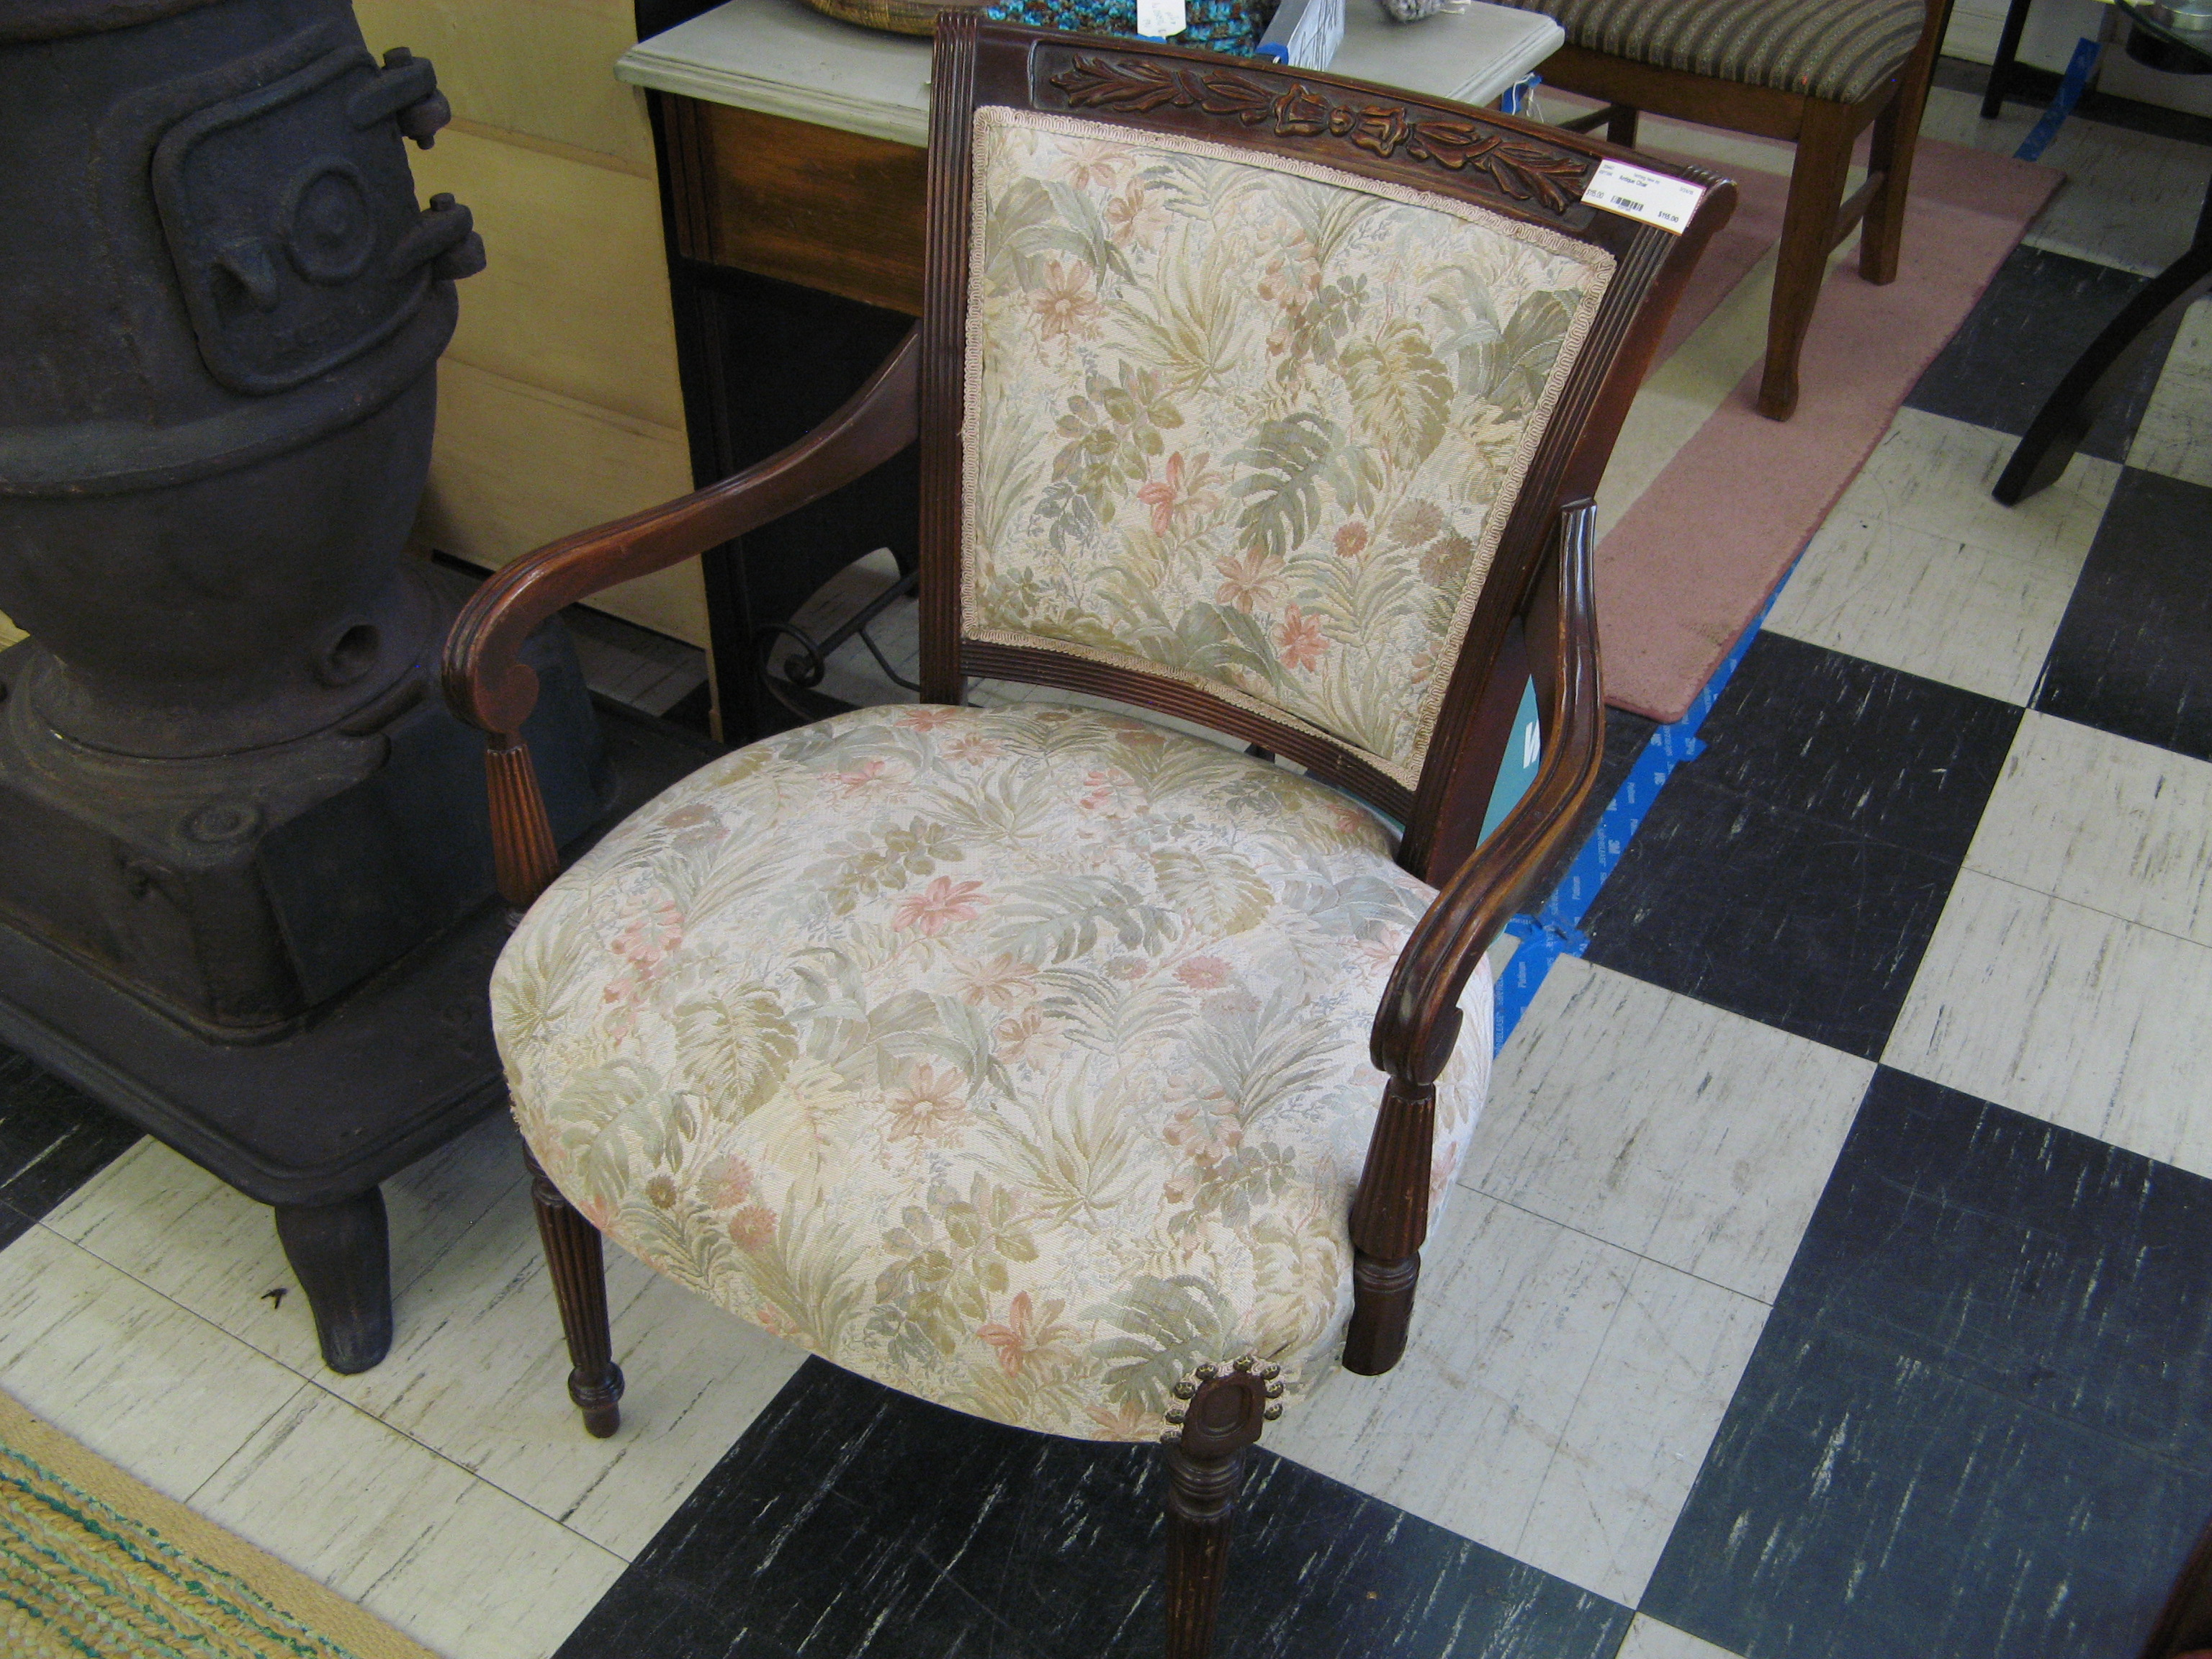 Antique Chair with Soft Floral Upholstery